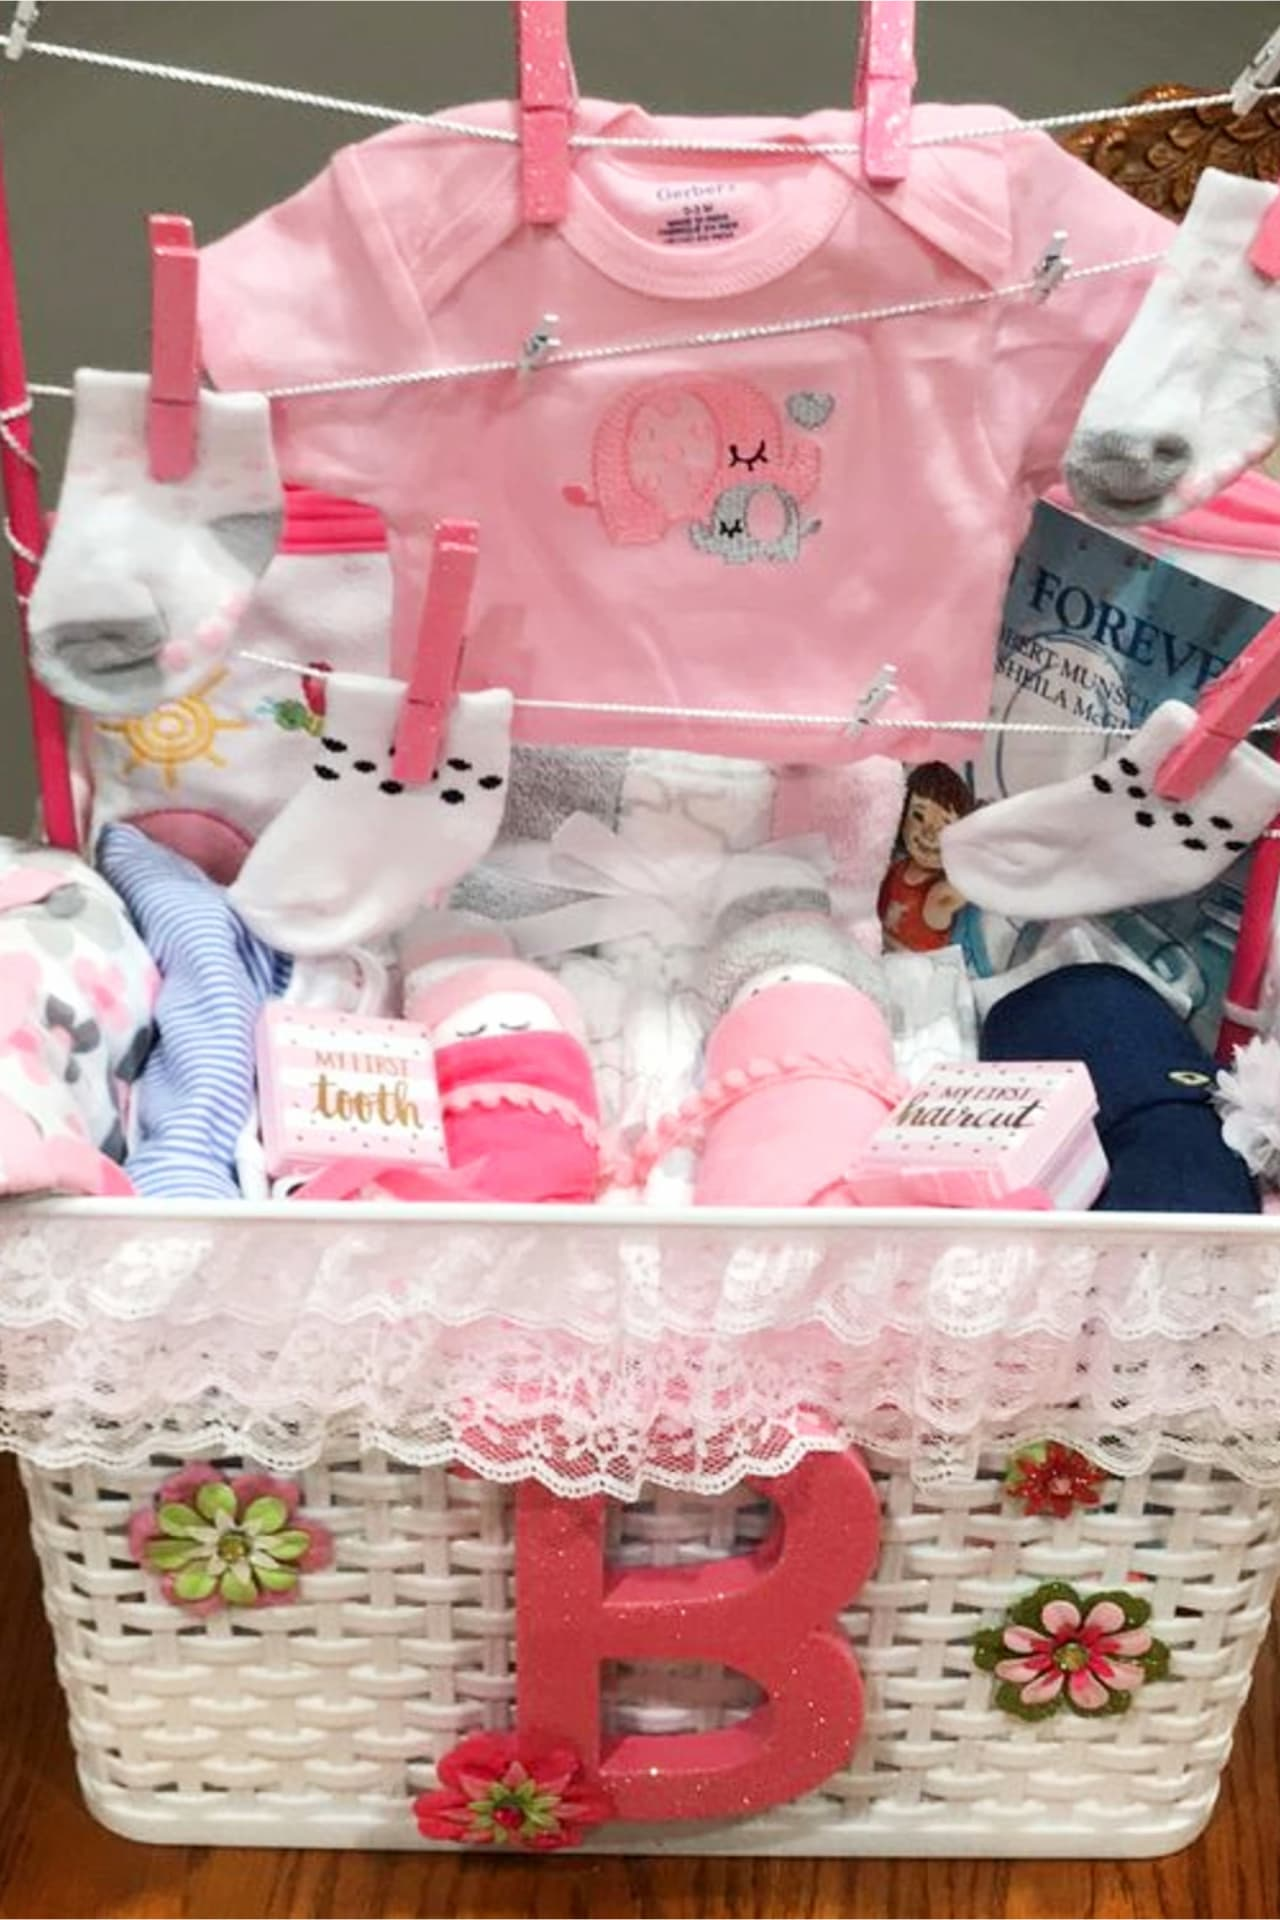 Baby Shower Gift Basket Ideas - Creative DIY Baby Shower Gifts on a Budget - What moms REALLY want for baby shower gifts! Such cute and UNIQUE baby shower basket ideas! Learn how to put together a baby shower gift basket and how to make a baby shower gift basket at home on a budget. These baby shower basket essentials are the best baby shower gift for mom who has everything or the mom to be who NEEDS everything.